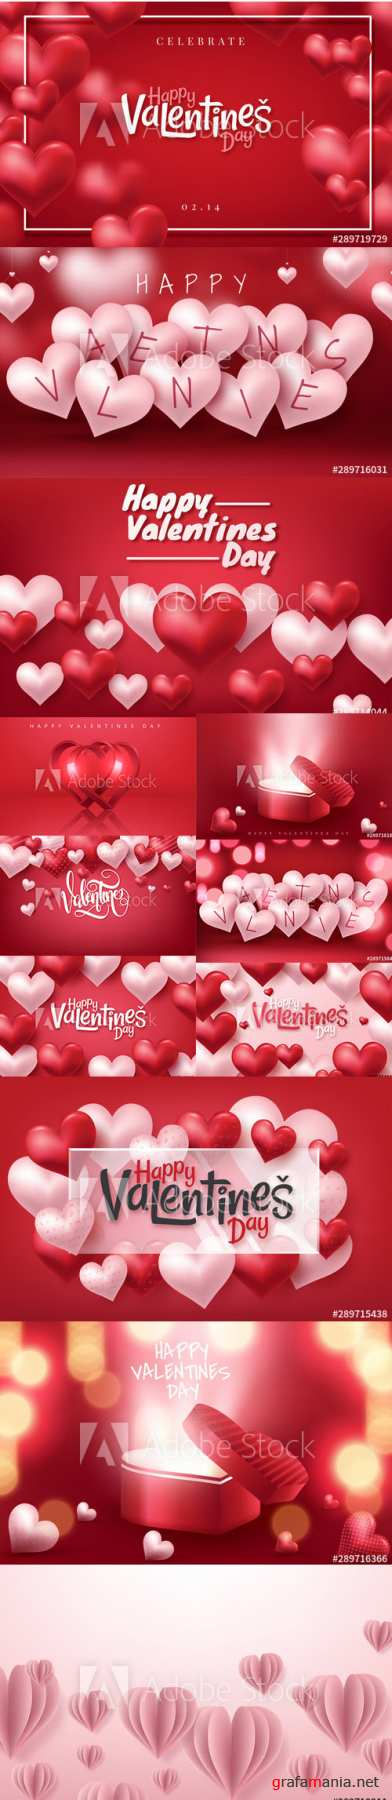 Colorful Happy Valentines Day Illustration with 3D hearts 2